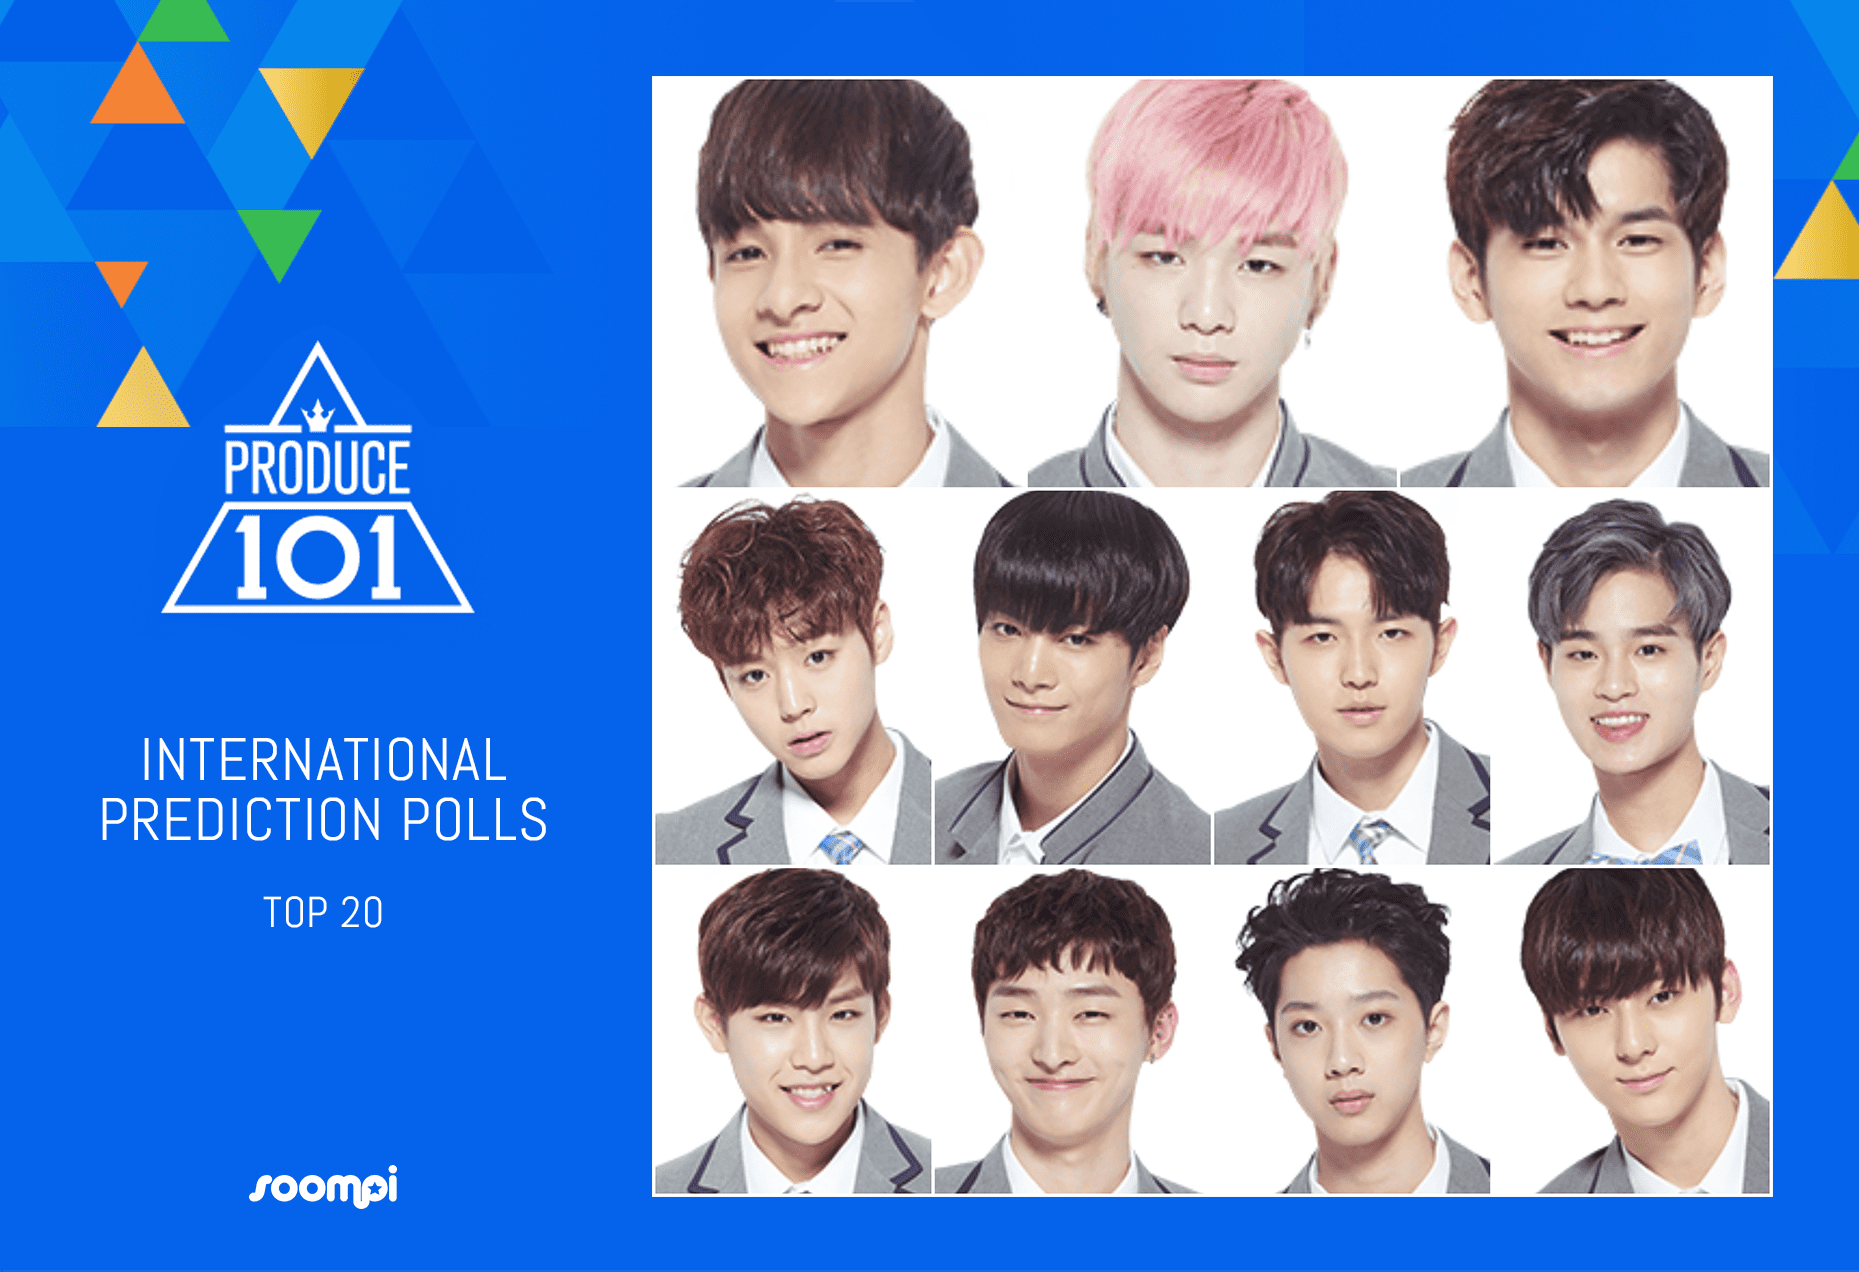 Exclusive: According To International Fans, This Is The Final Produce 101 Season 2 Lineup